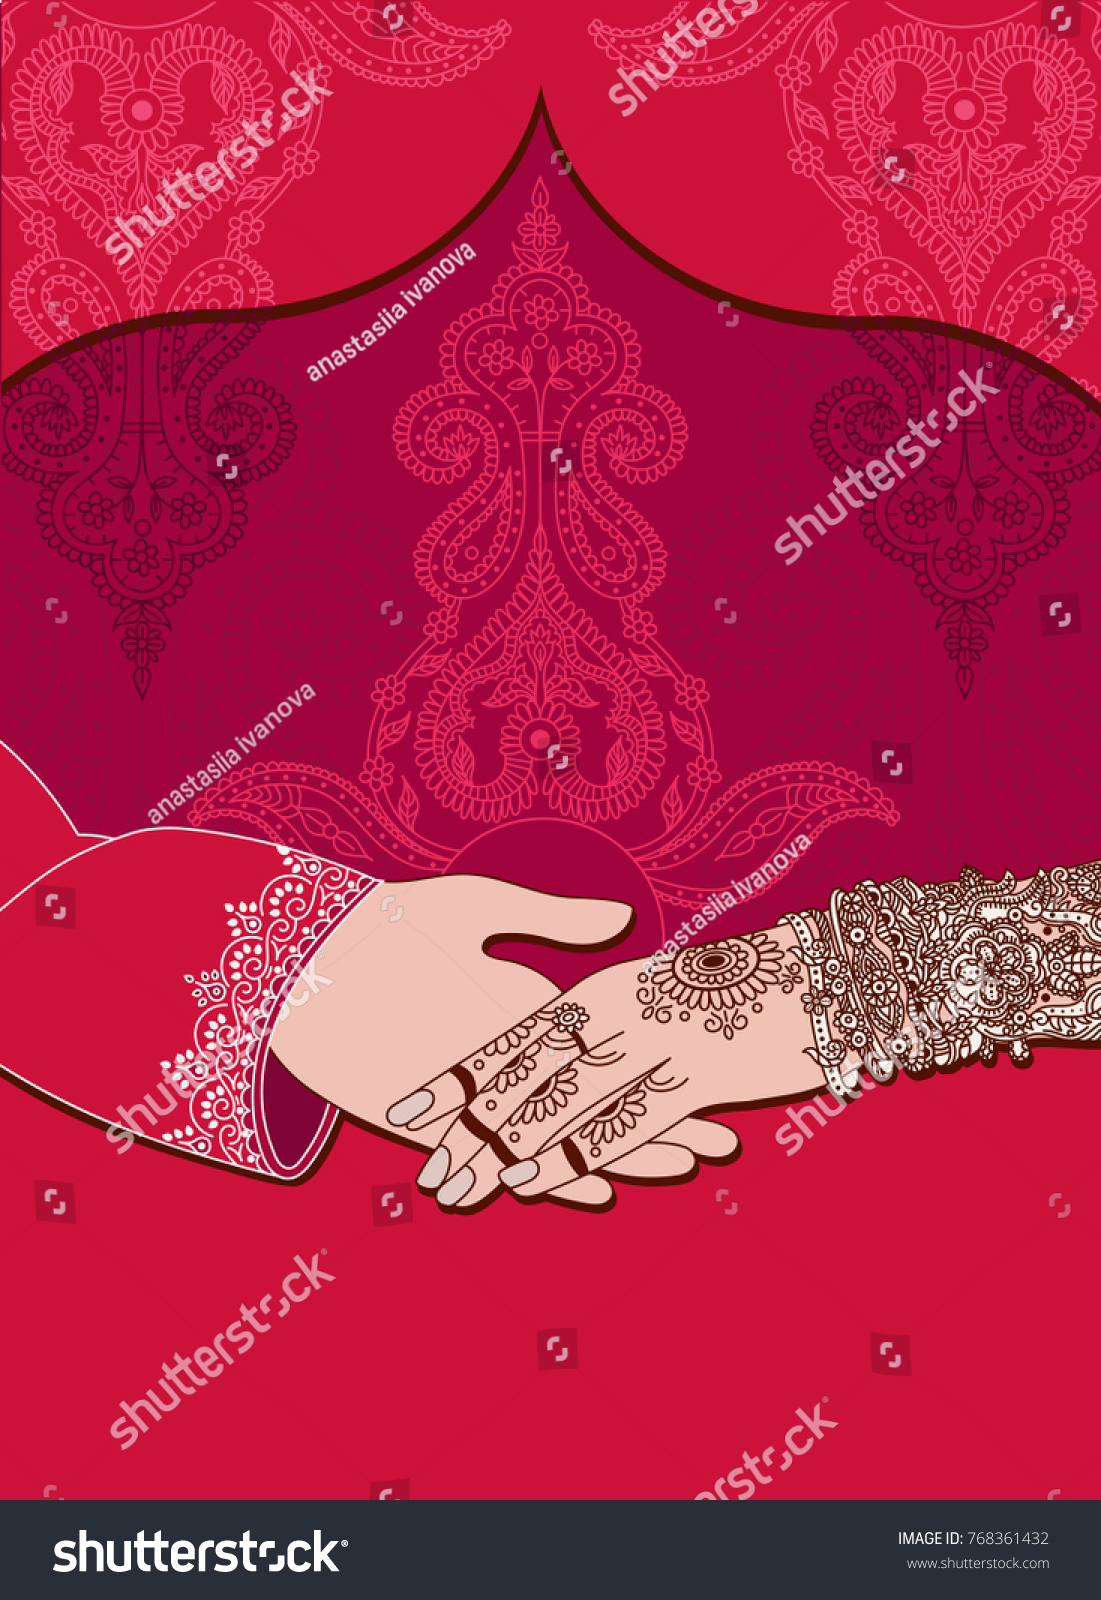 Wedding Indian Invitation Card On Red Stock Vector (Royalty Free ...